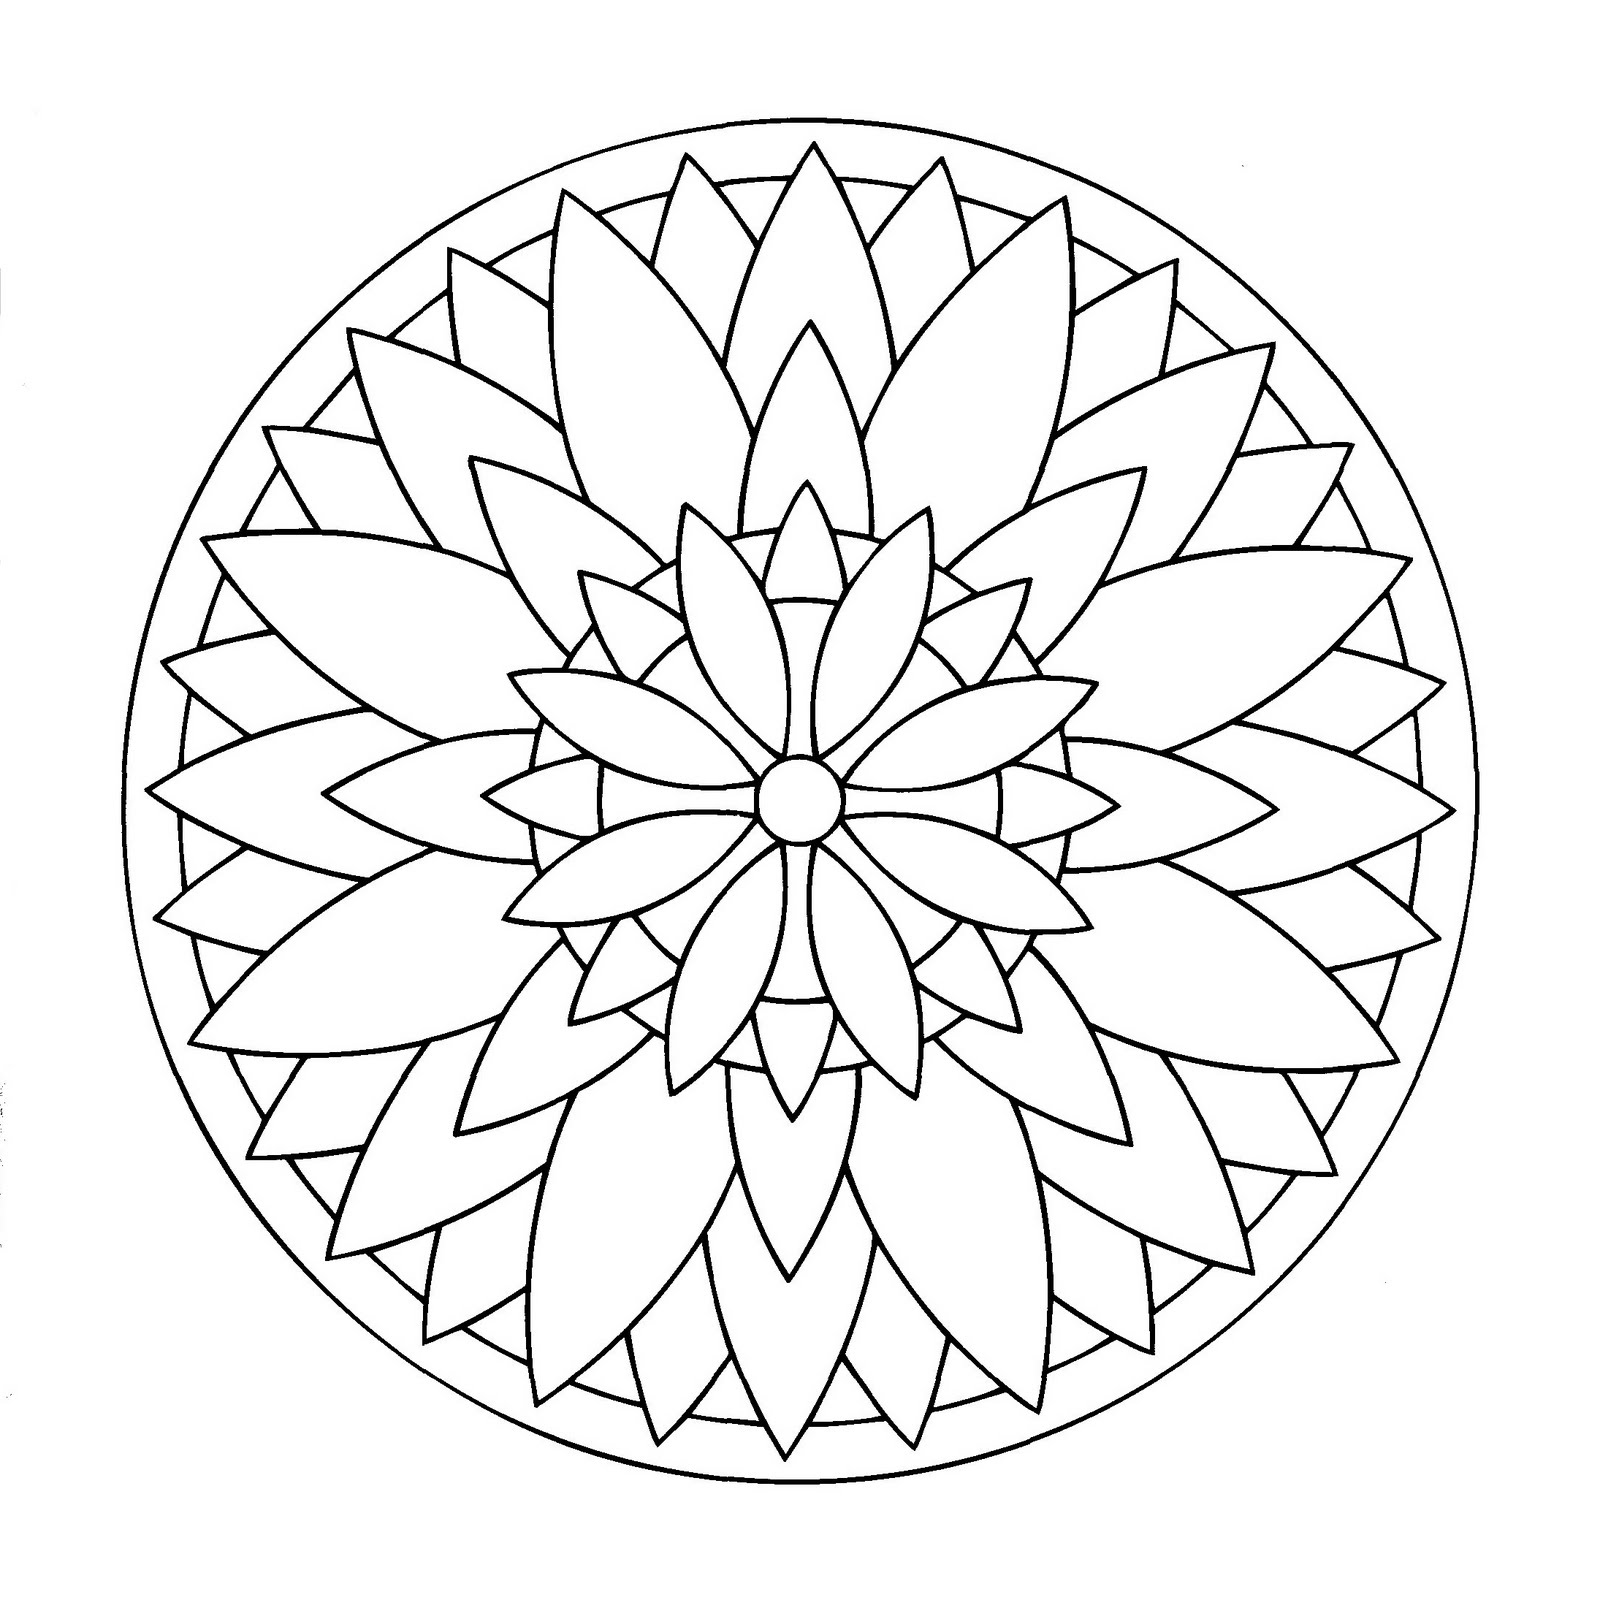 simple mandalas to print and color mandala to color free to print 5 simple mandalas 100 and color mandalas simple to print